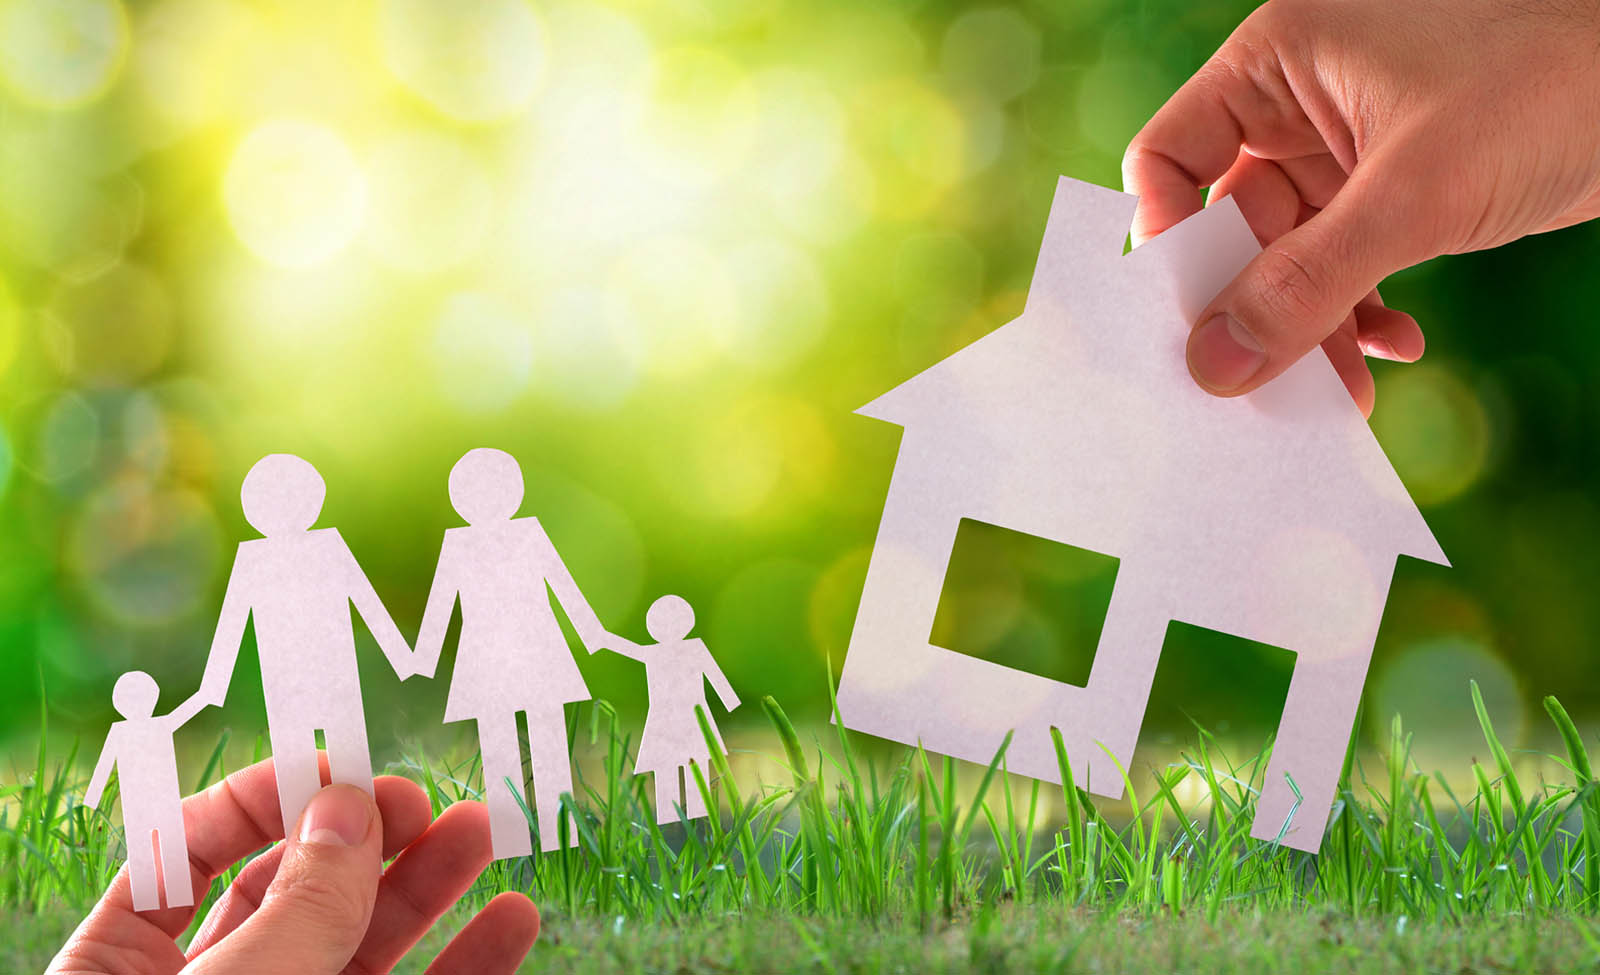 5 Best Home Insurance Companies of 2018